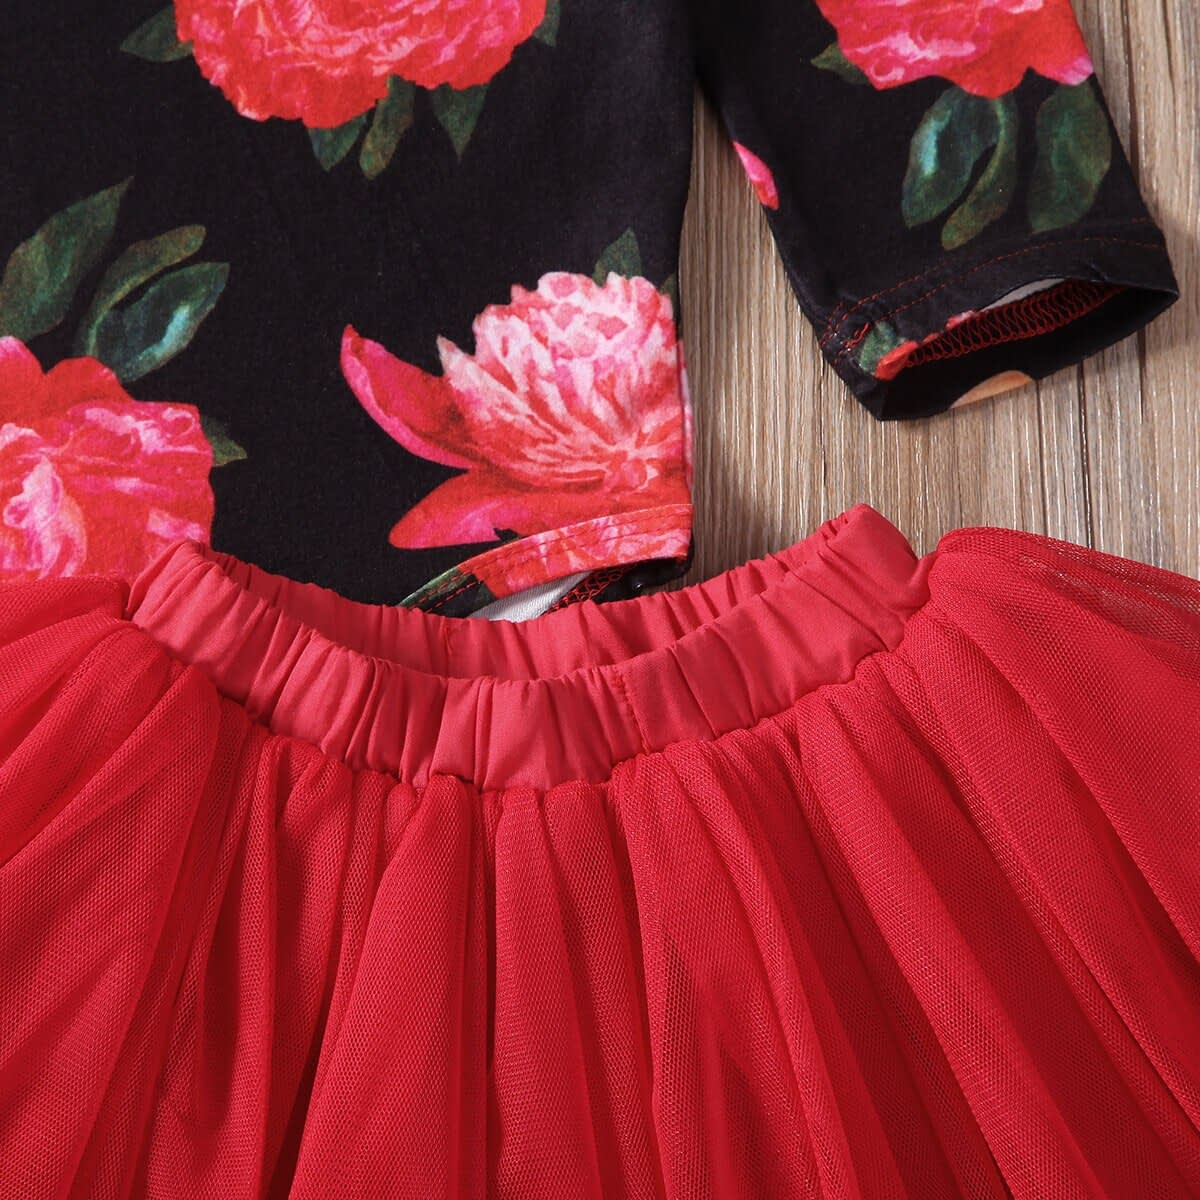 Baby Girl's Floral Printed Clothing Set